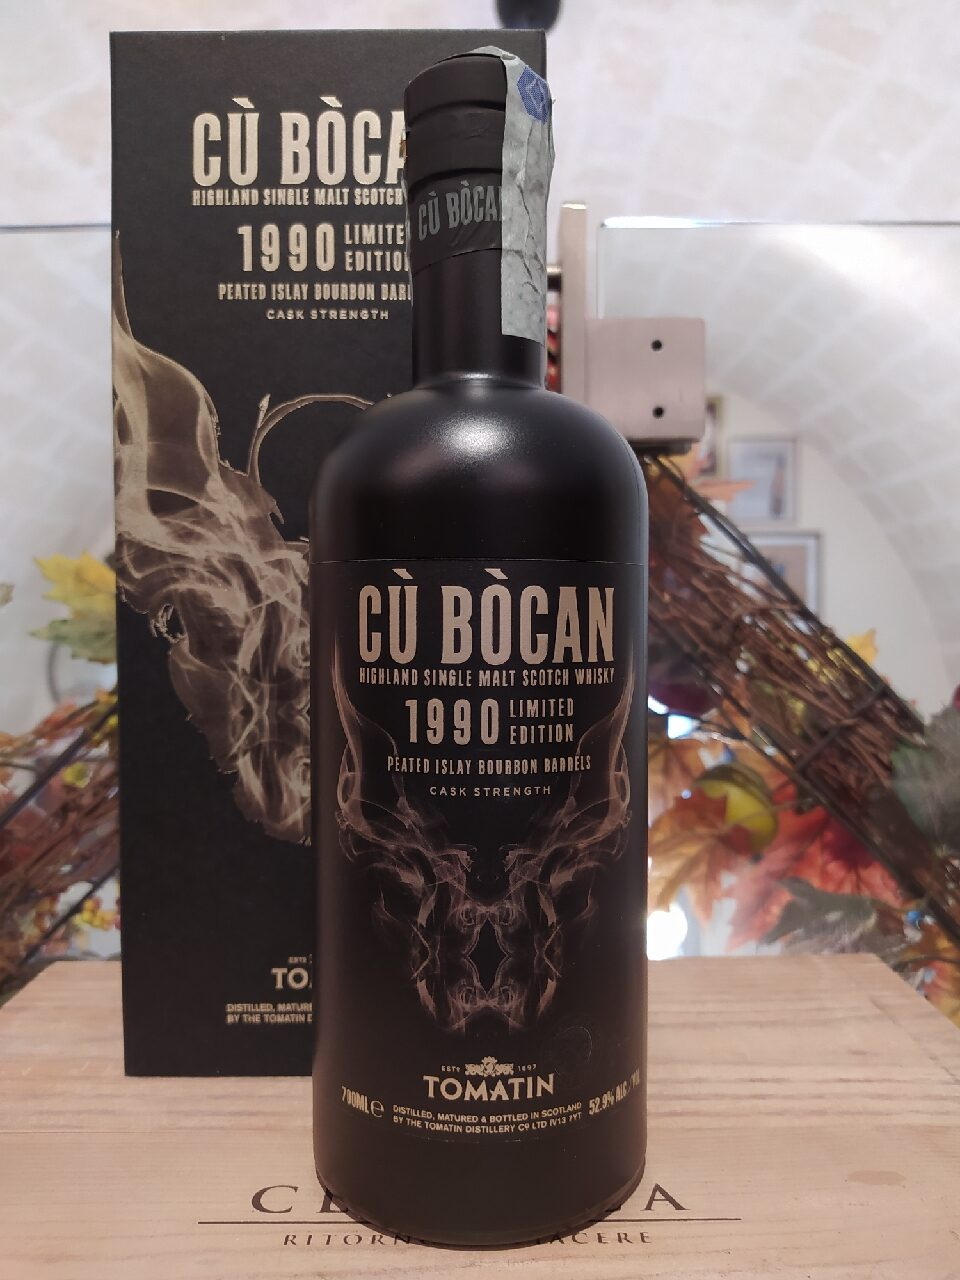 Cù Bòcan Highland Single Malt Scotch Whisky 1990 28 YO Vintage Limited Edition